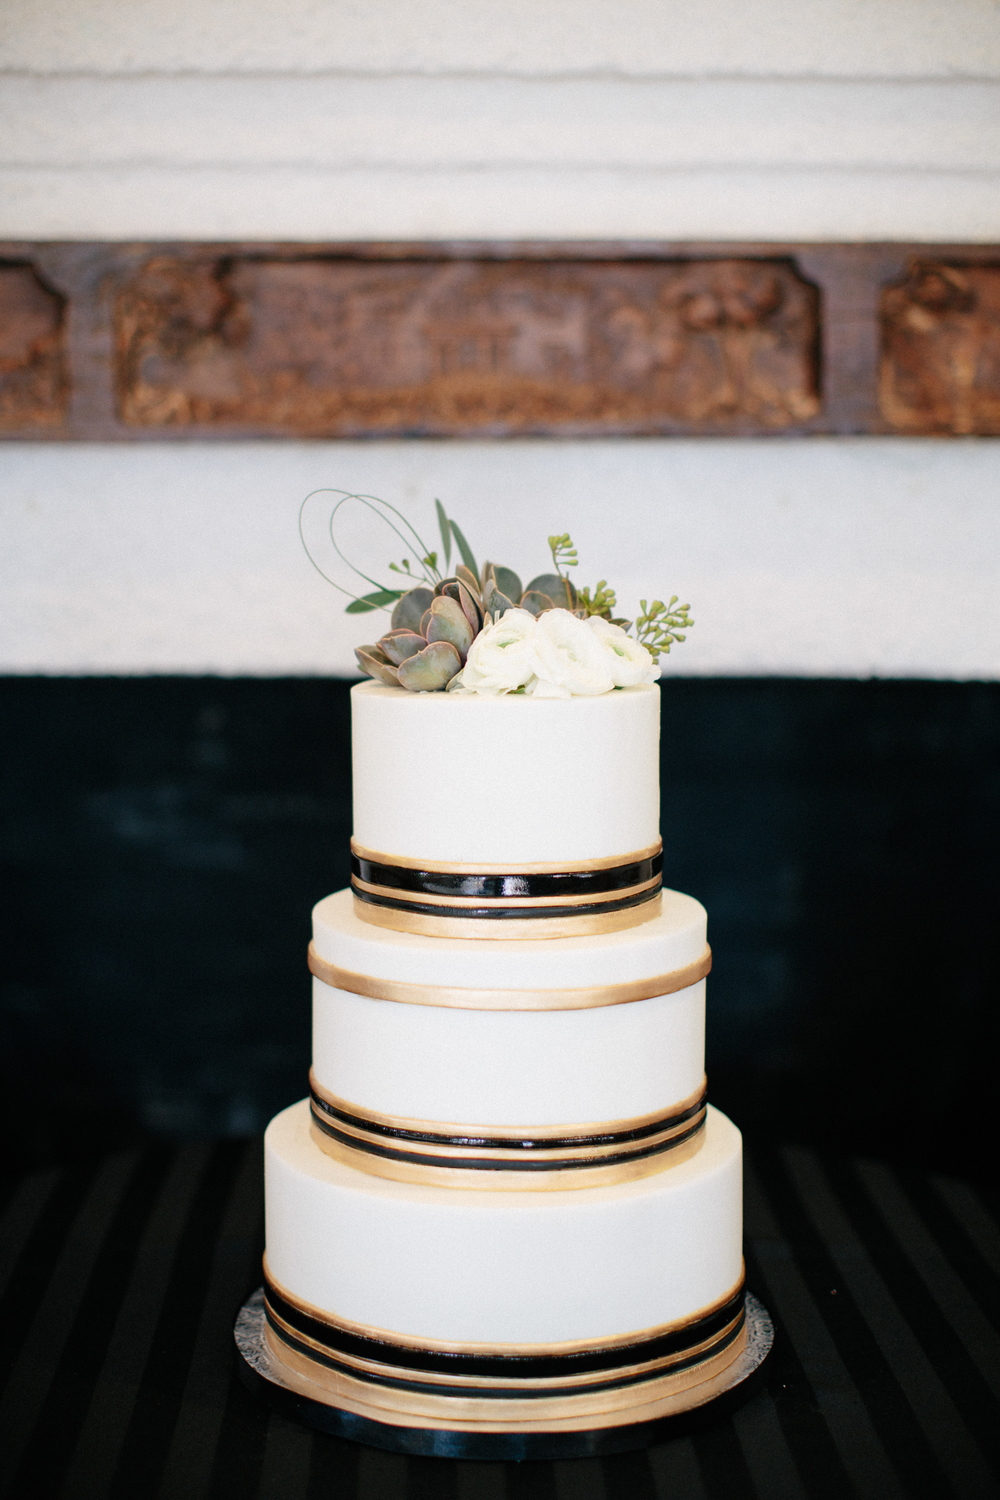 Paige-Newton-Photography-Wedding-Details-Simple-White-Cake.jpg